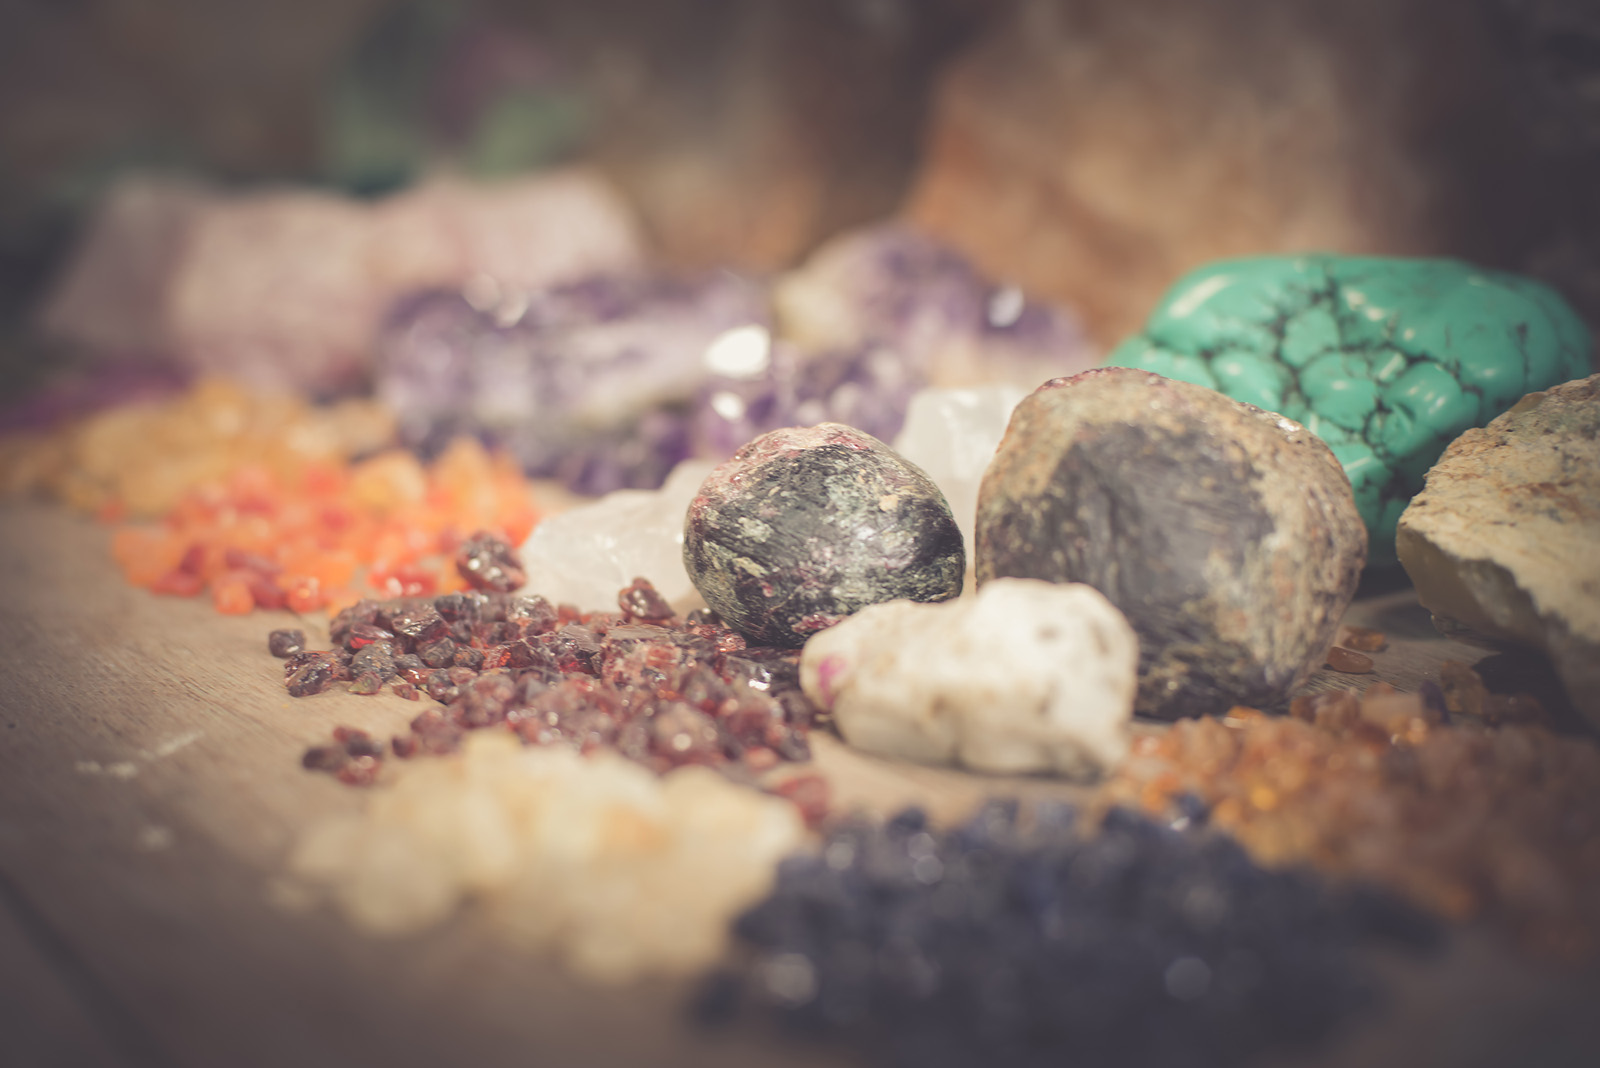 Rough Stones of Garnet, and more